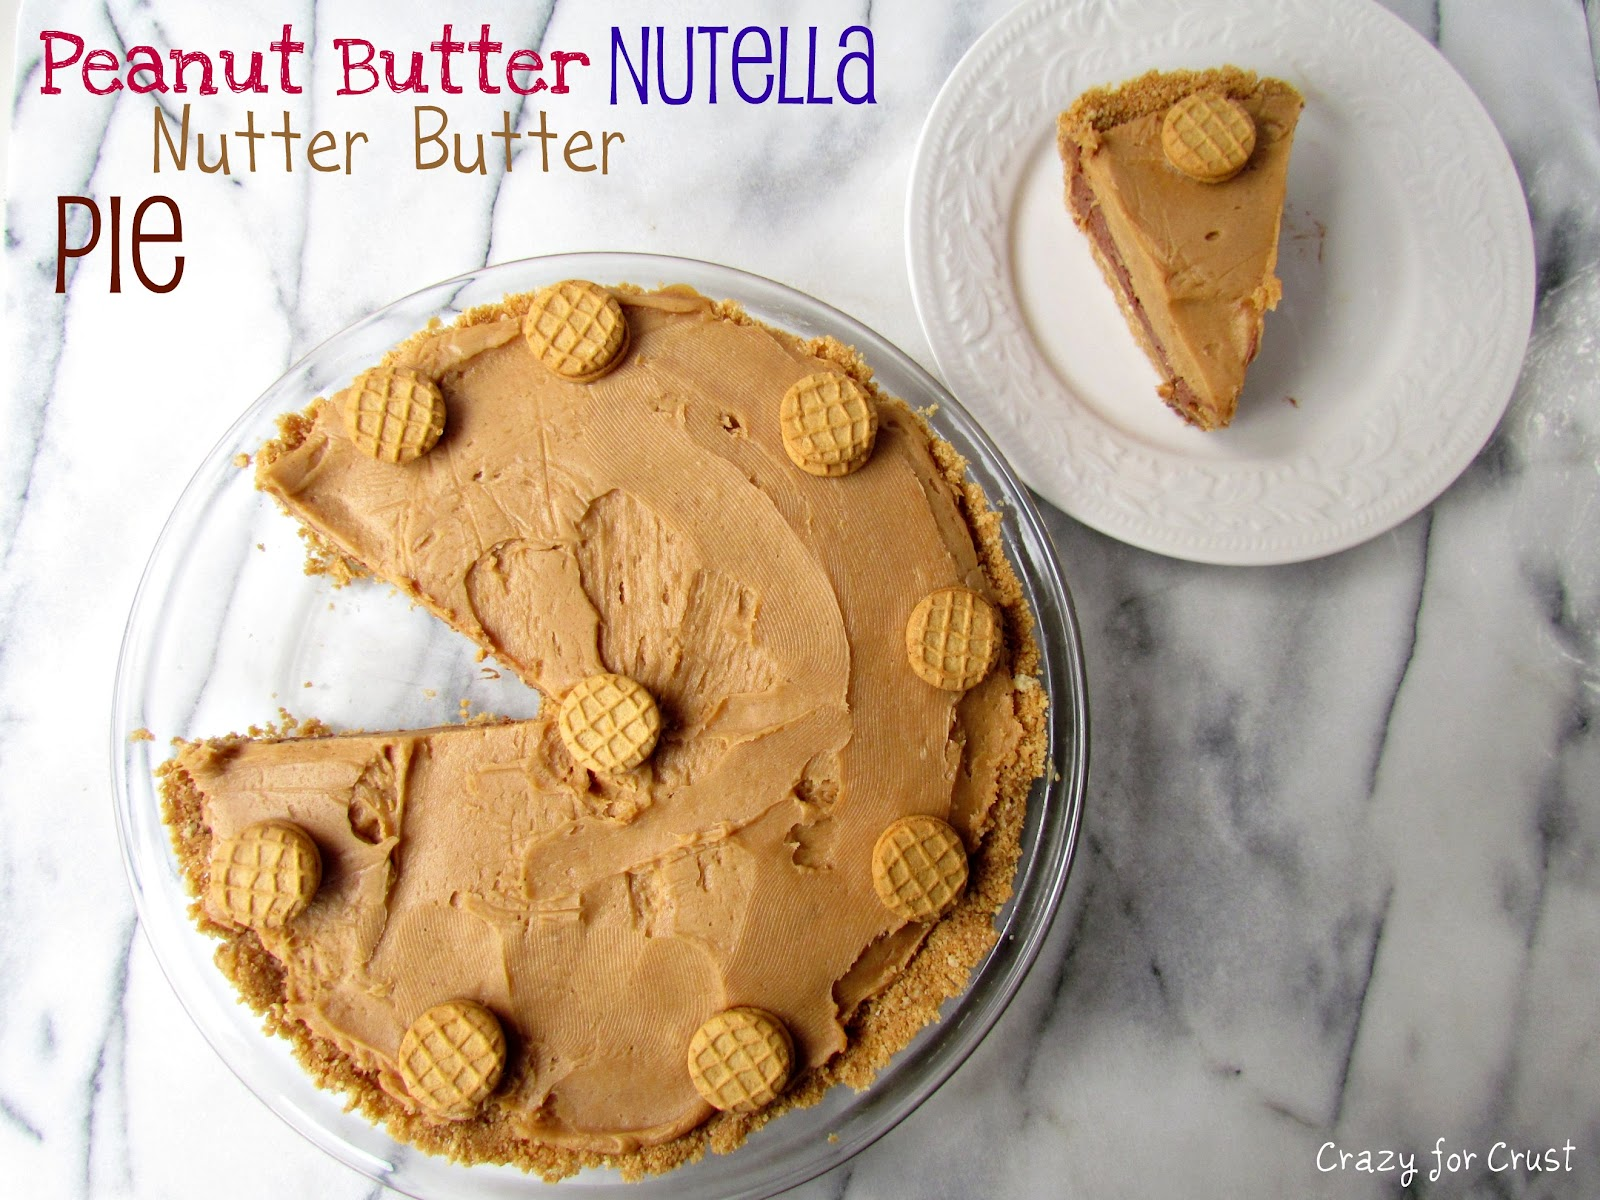 Peanut Butter Nutella Nutter Butter Pie - Crazy for Crust